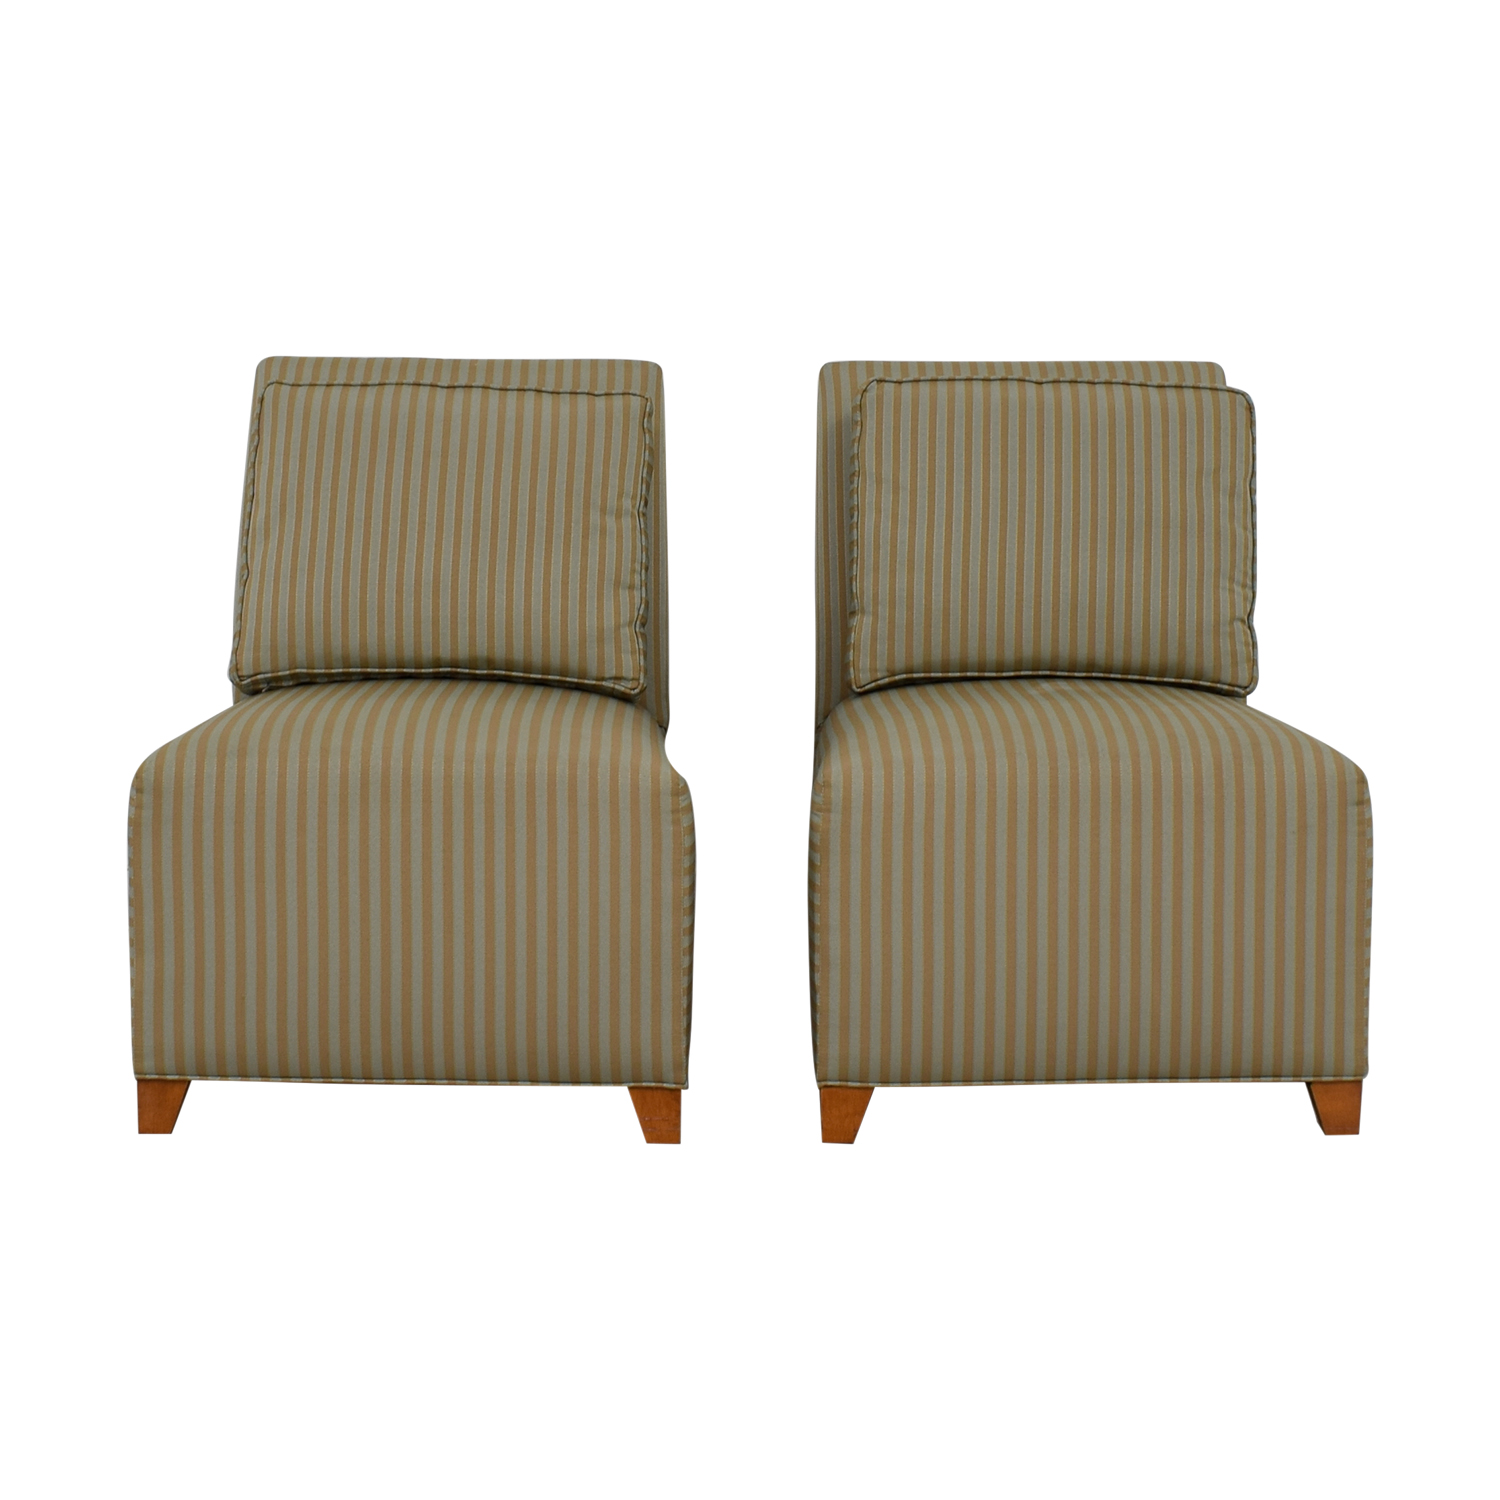 Ethan Allen Striped Slipper Accent Chairs / Sofas